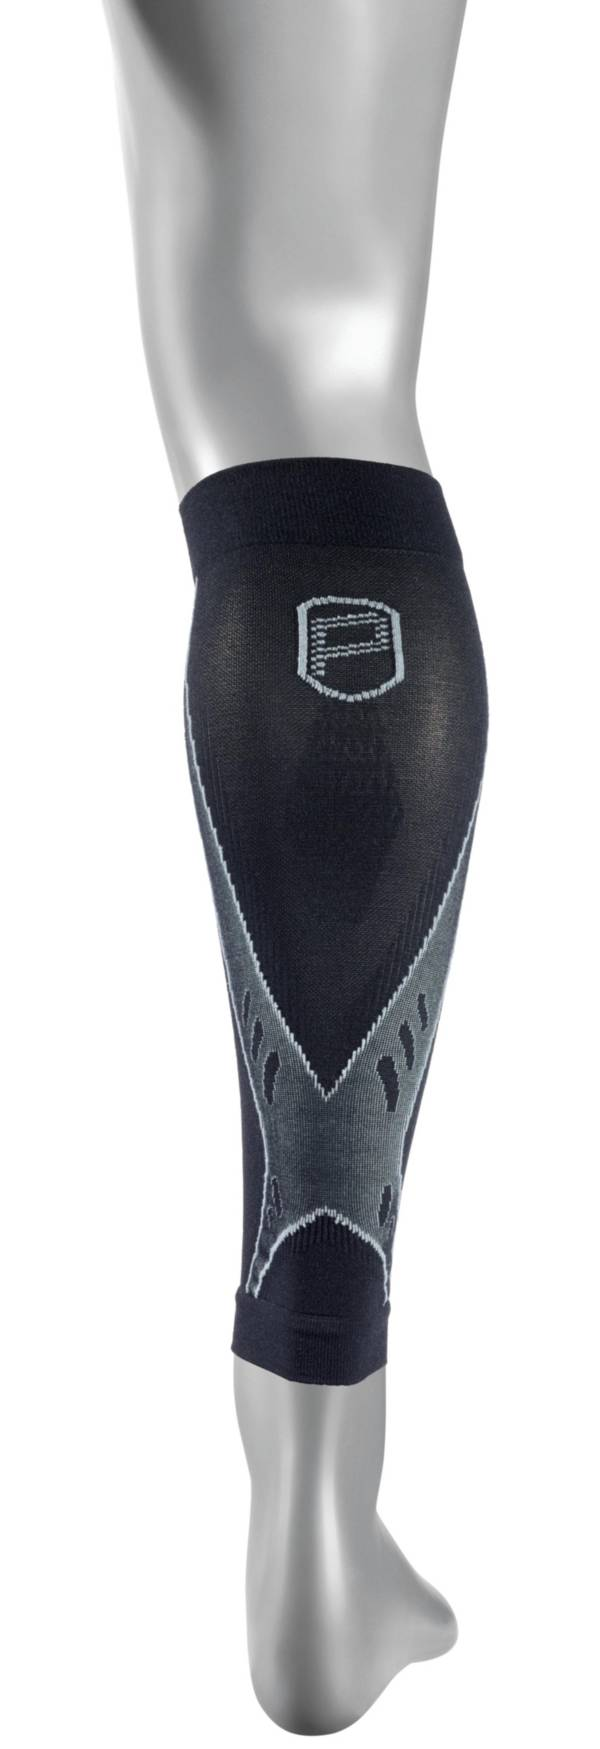 P-TEX PRO Knit Compression Calf Sleeve product image